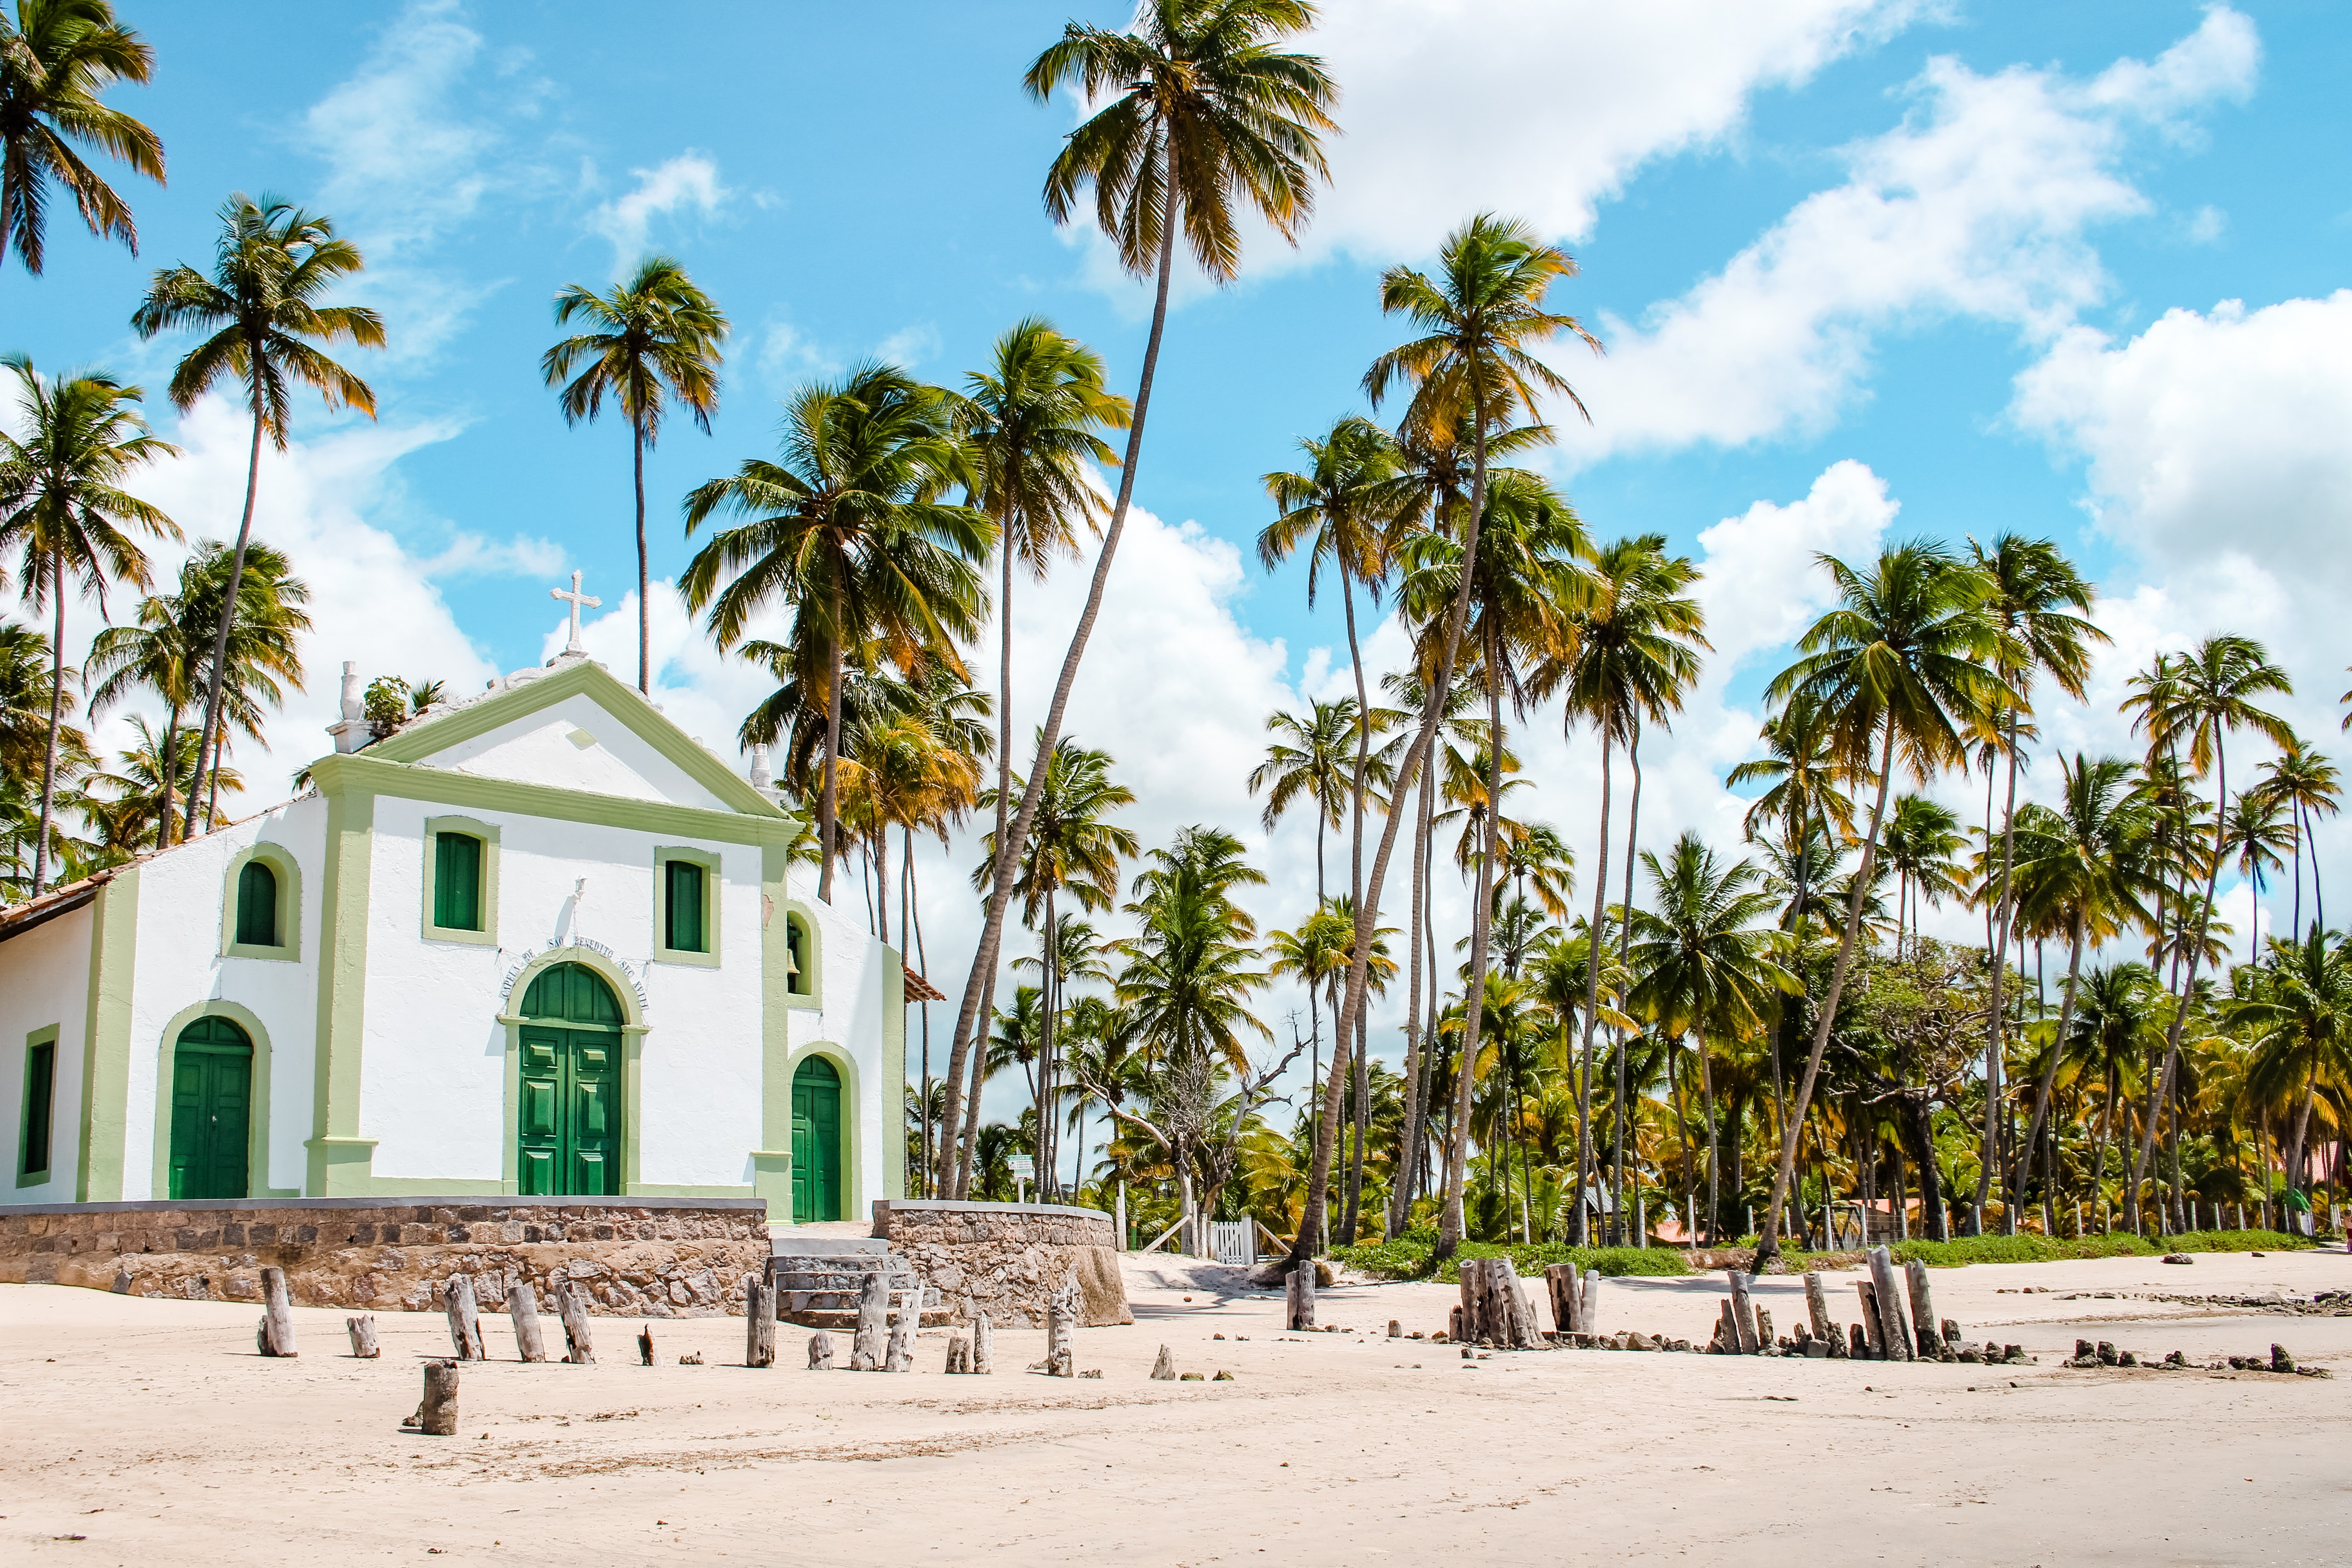 coconut palm trees near white painted house